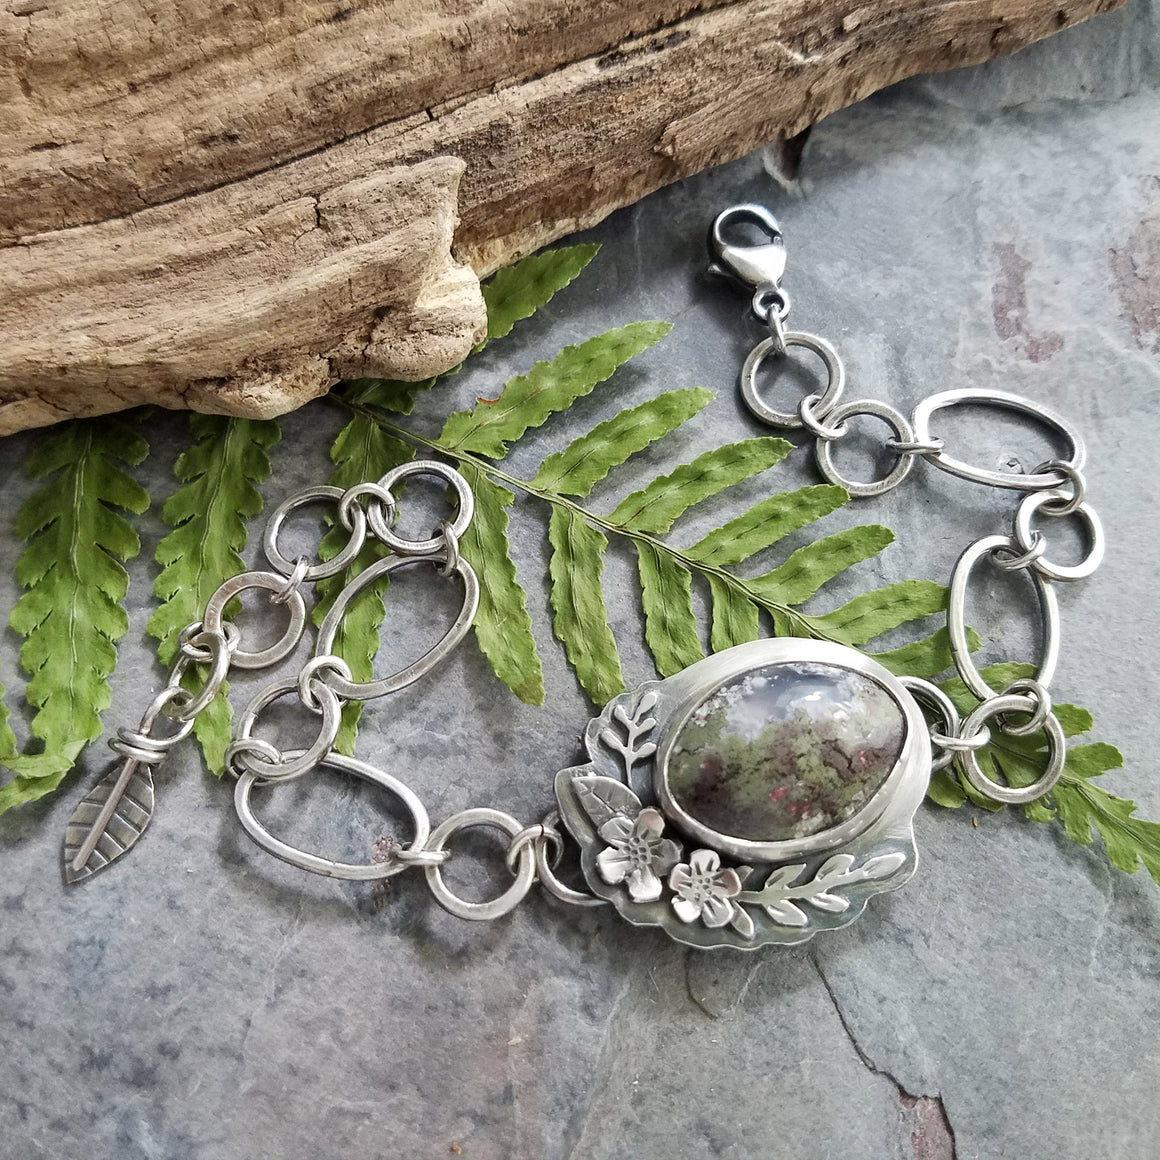 indonesian moss agate chain link bracelet